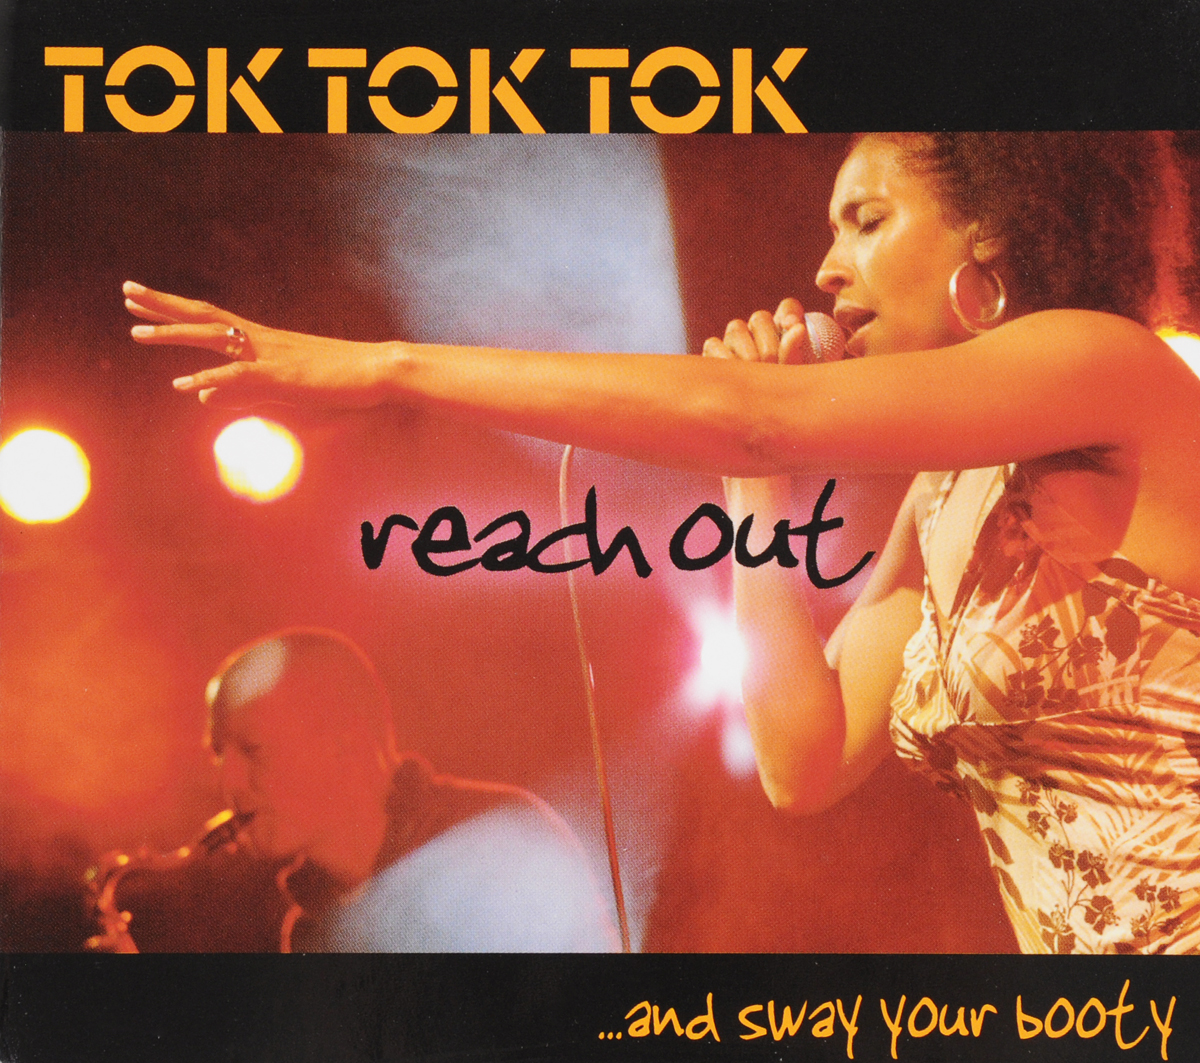 Tok Tok Tok Tok Tok Tok. Reach Out ...And Sway Your Booty (2 CD) tok tok tok tok tok tok gershwin with strings page 3 page 10 page 5 page 2